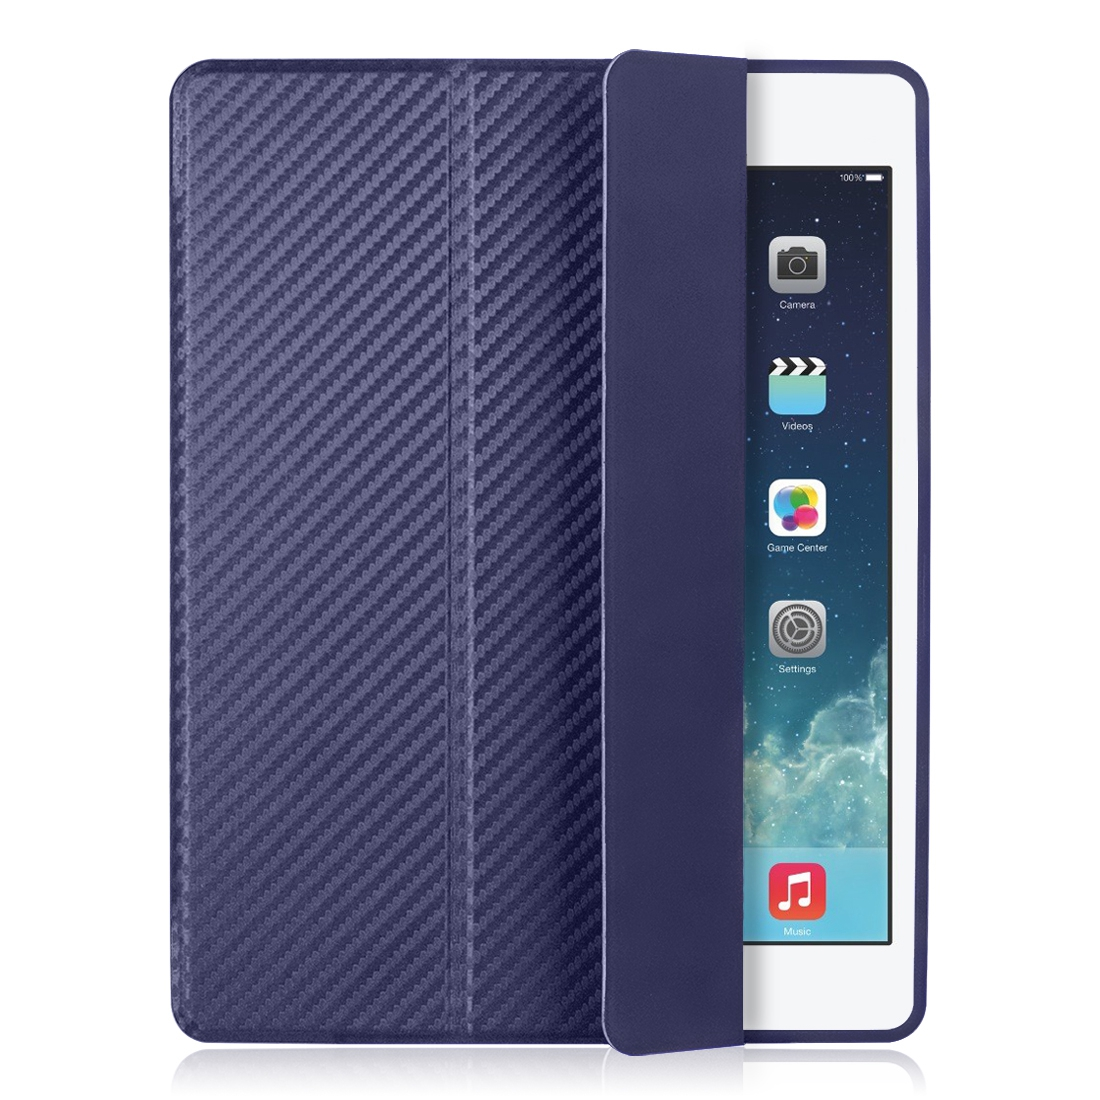 For iPad Mini 4 Case 7.9 inch A1538 A1550 Silicone Back PU Leather Flip Stand Auto Sleep/Wake for iPad Mini 4 Cover Case Smart nice soft silicone back magnetic smart pu leather case for apple 2017 ipad air 1 cover new slim thin flip tpu protective case